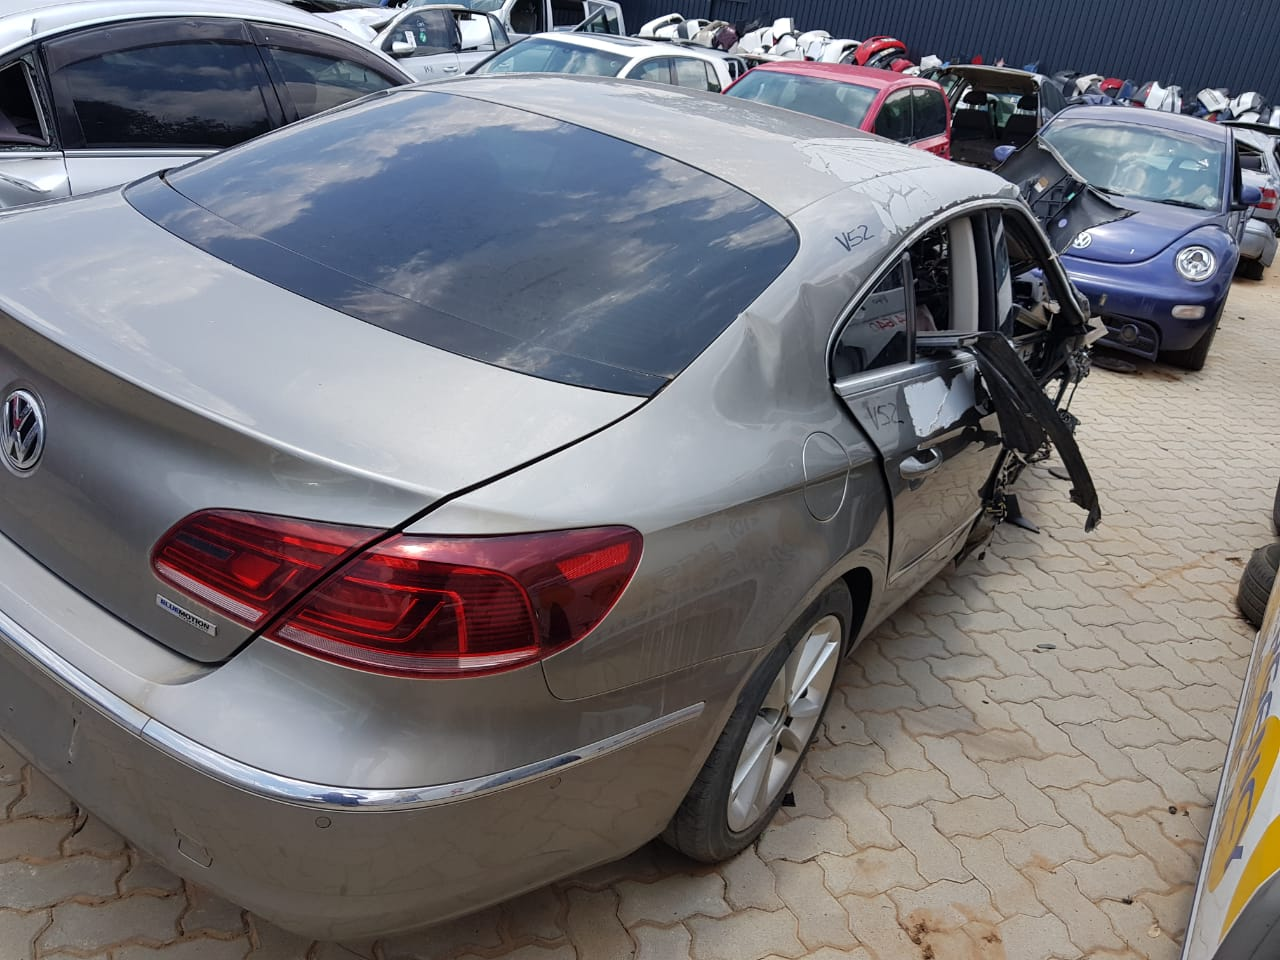 VW CC/Passat Stripping for Spares